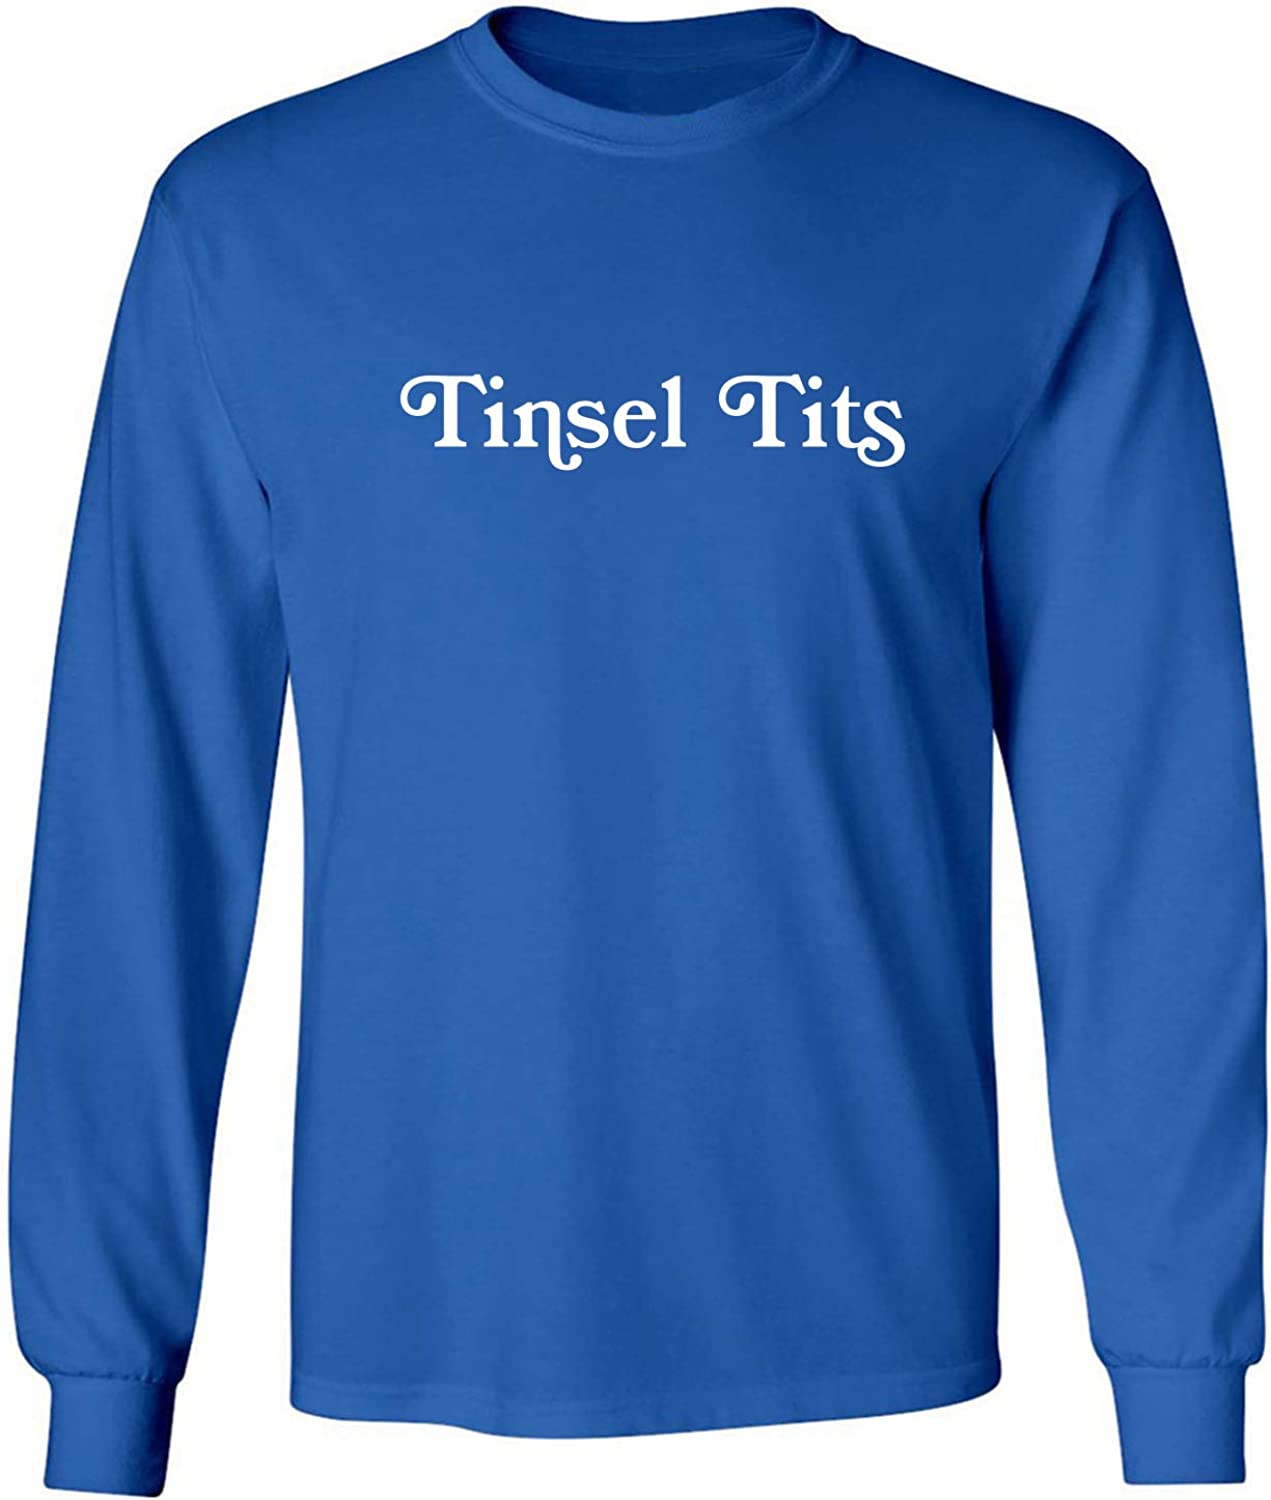 Tinsel Tits Adult Long Sleeve T-Shirt in Royal - XXXX-Large